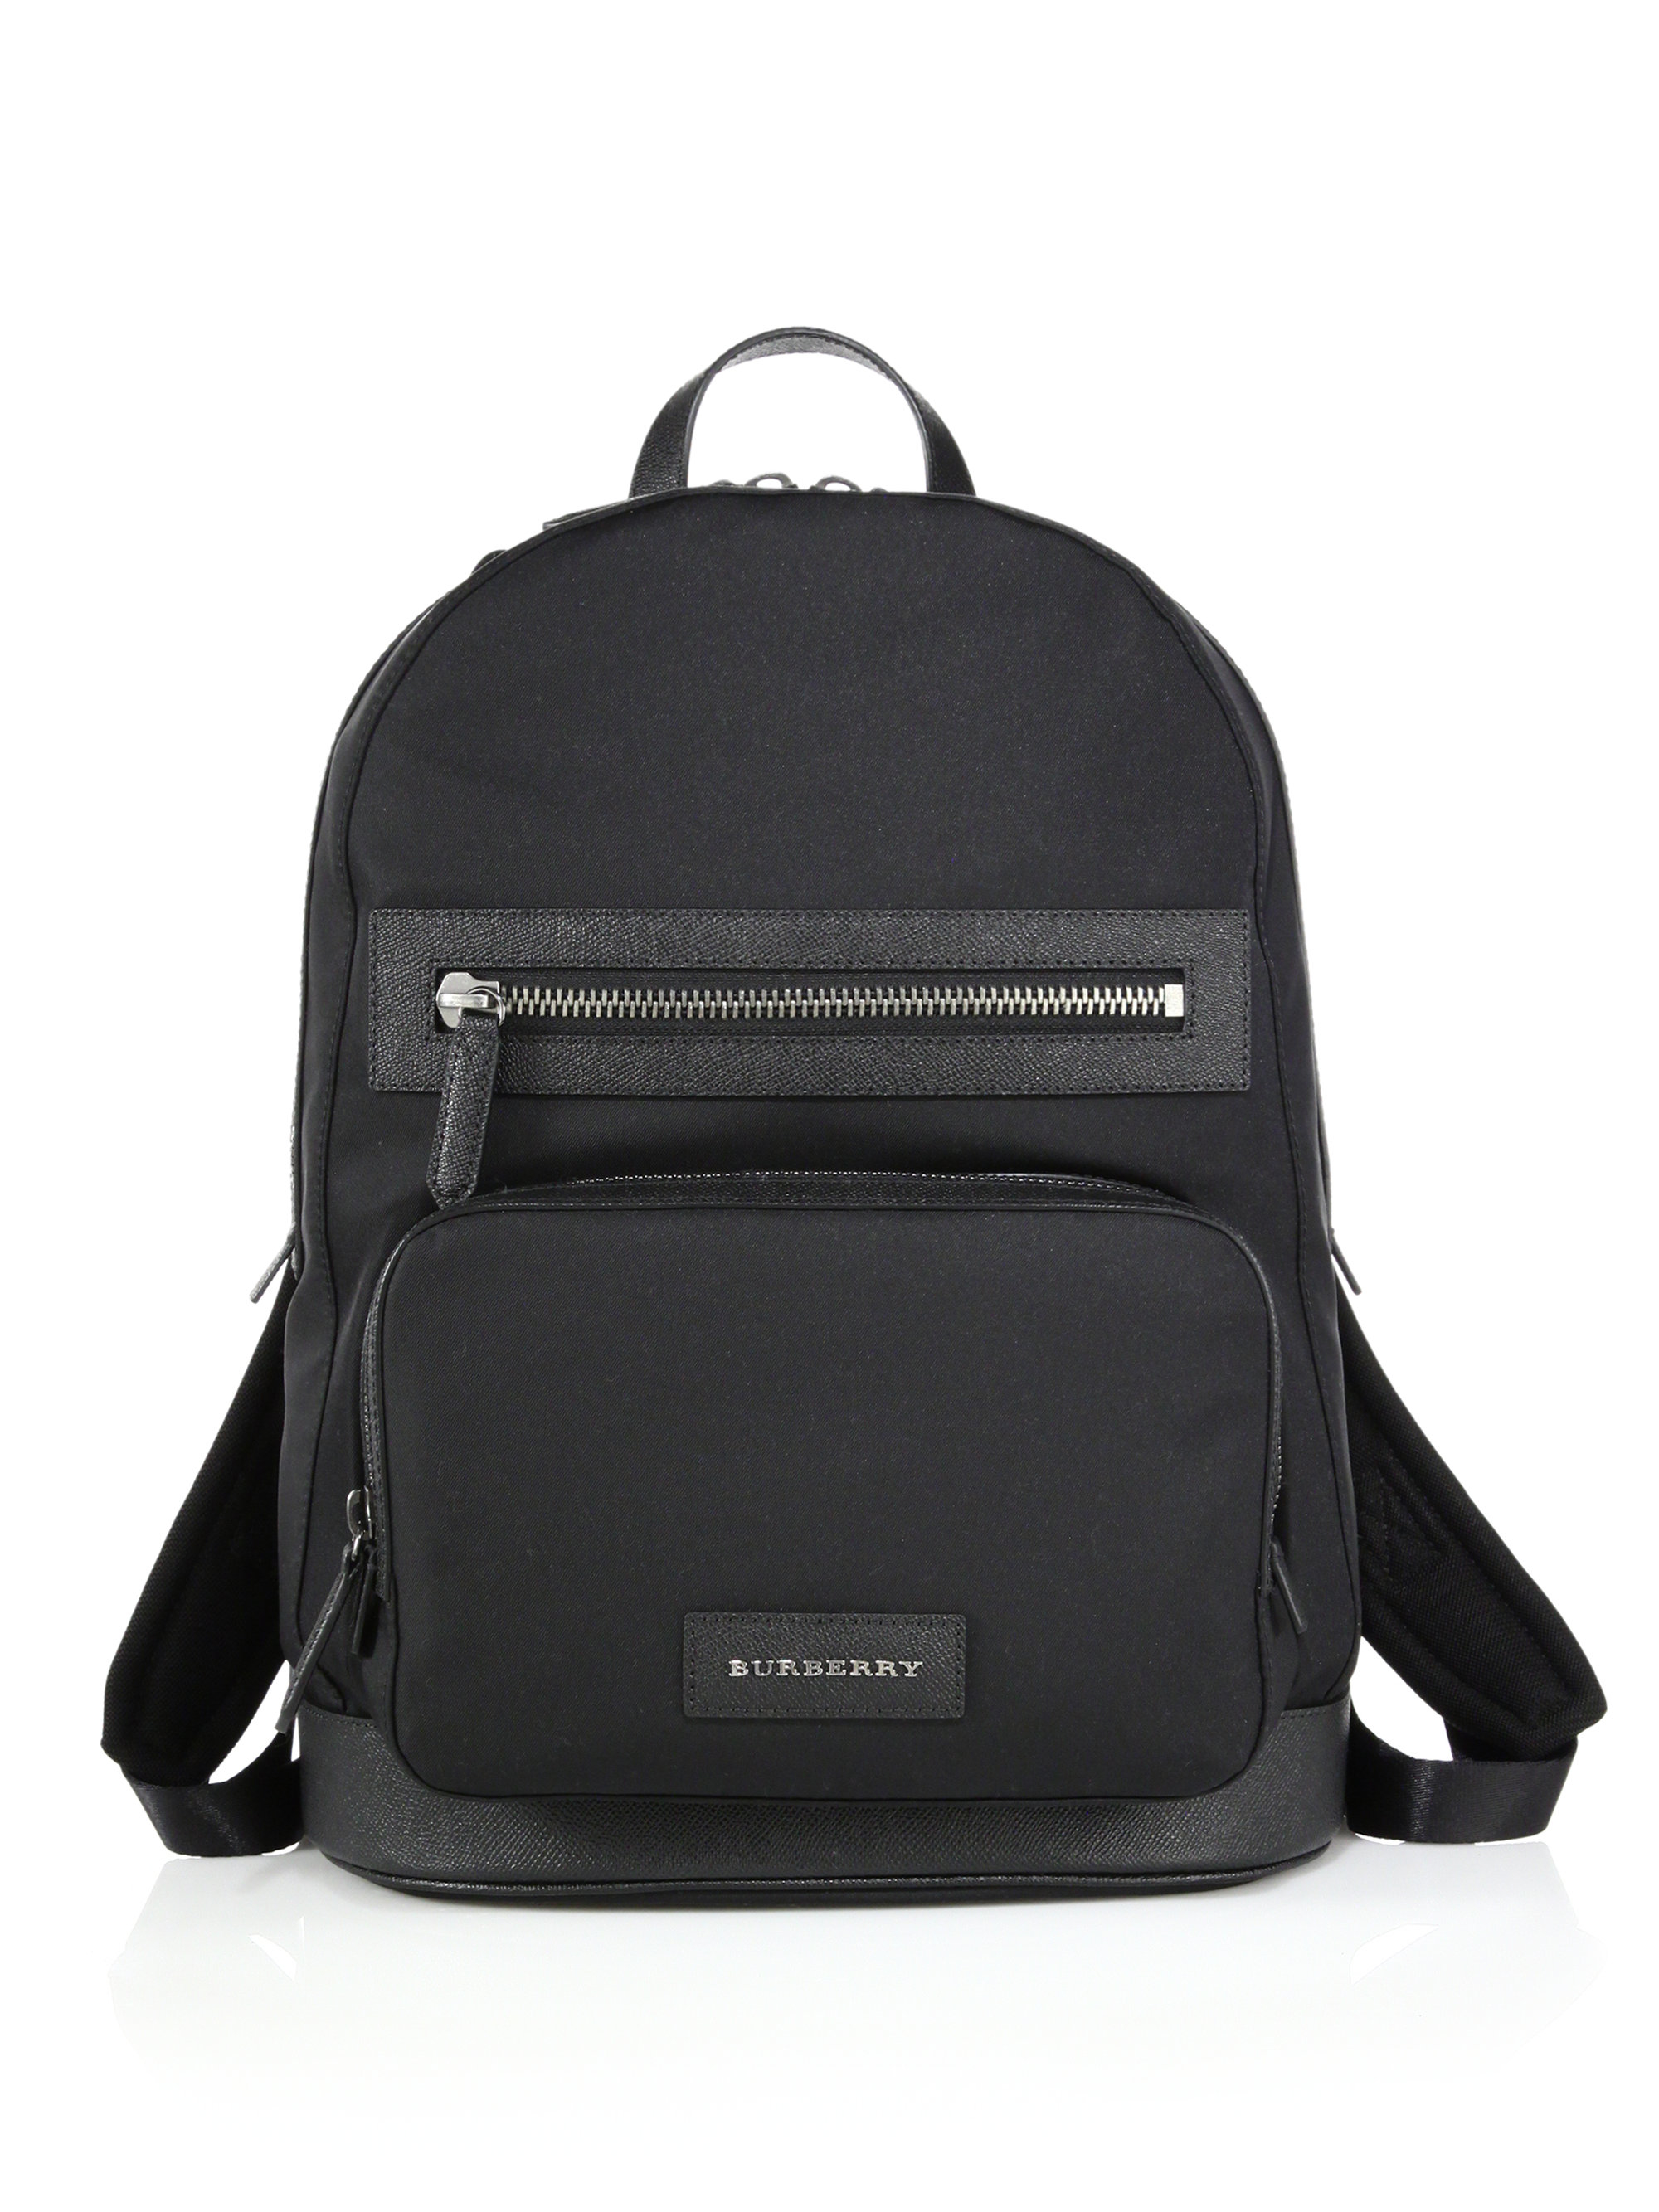 Burberry Backpack For Sale